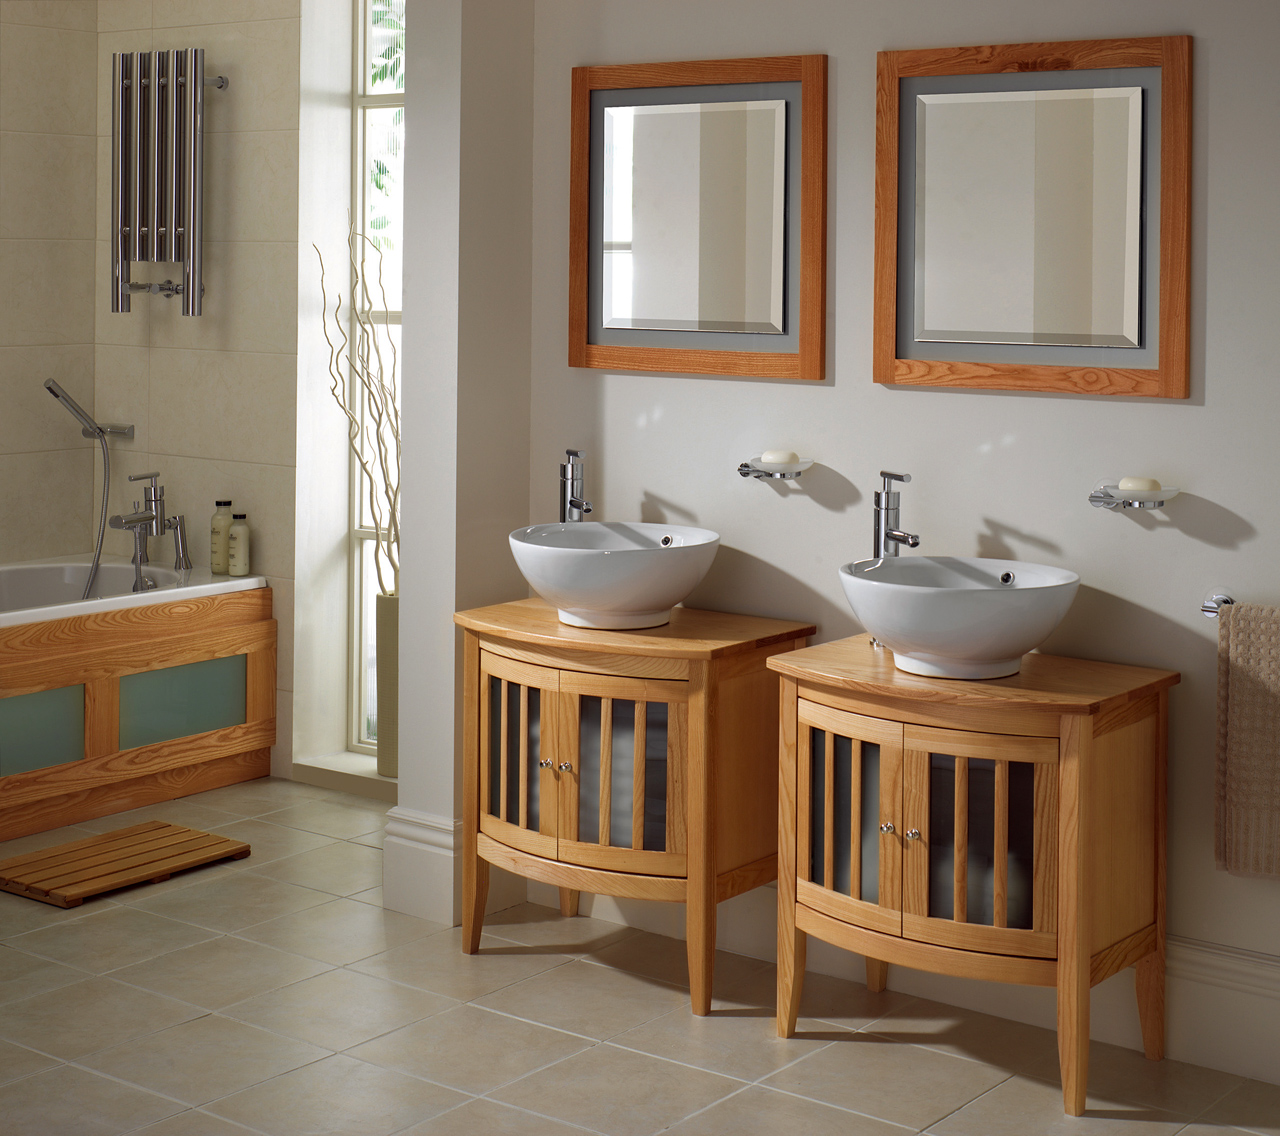 Classic Bathrooms: Imperial Bathrooms - Linea-Main